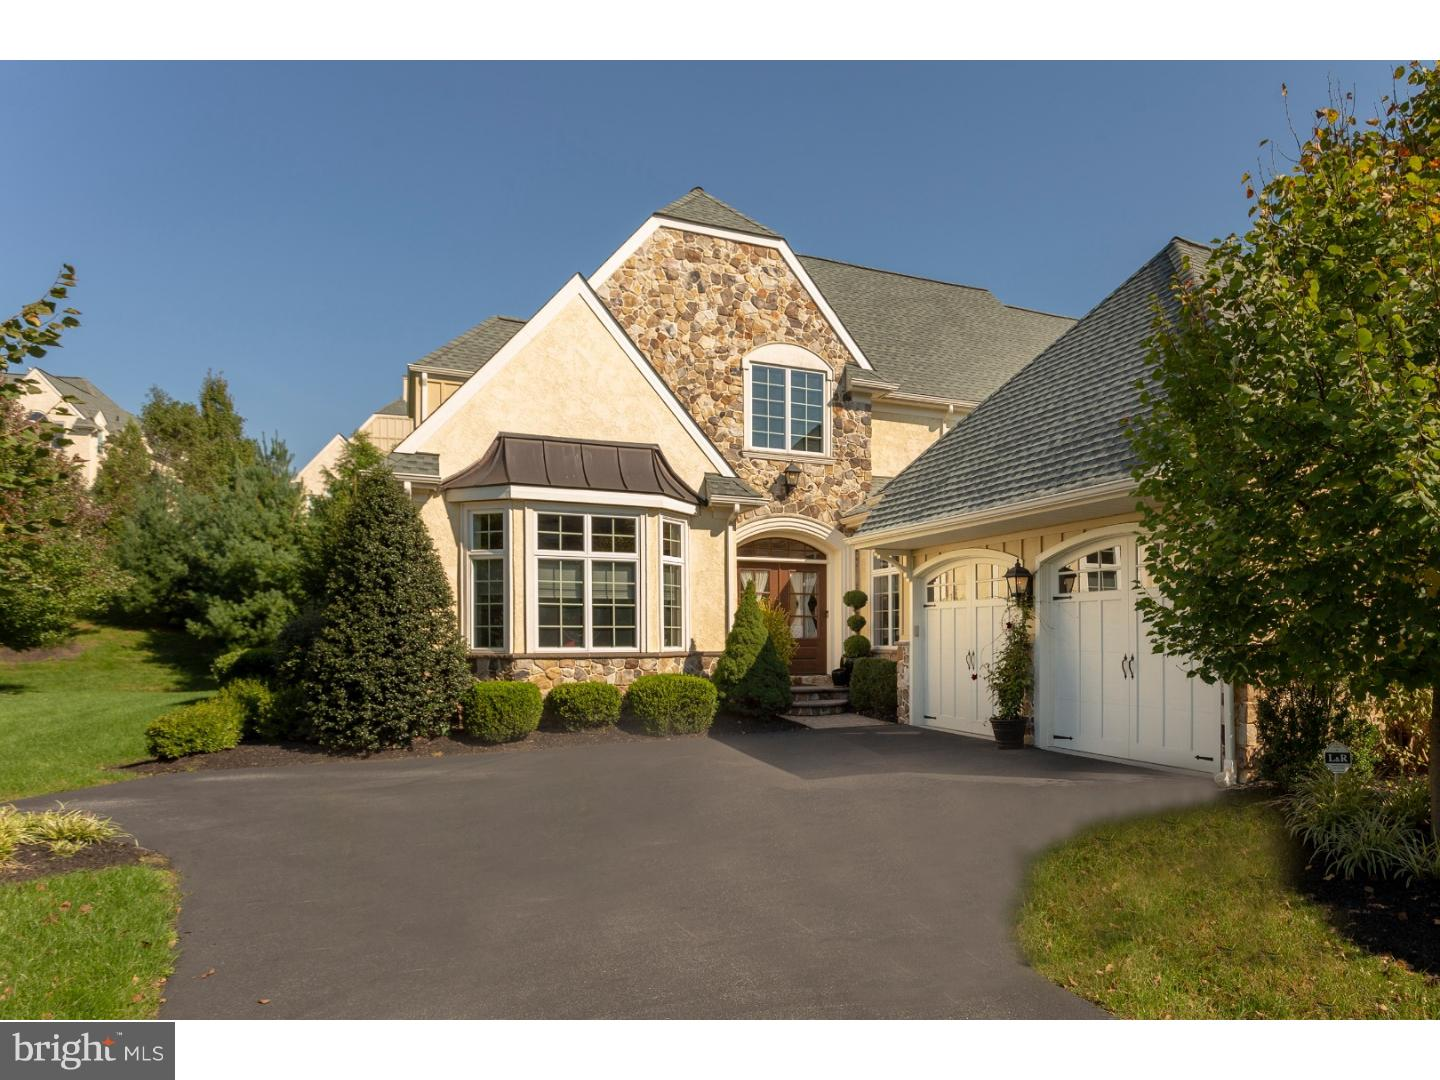 221 Valley Ridge Road Haverford, PA 19041